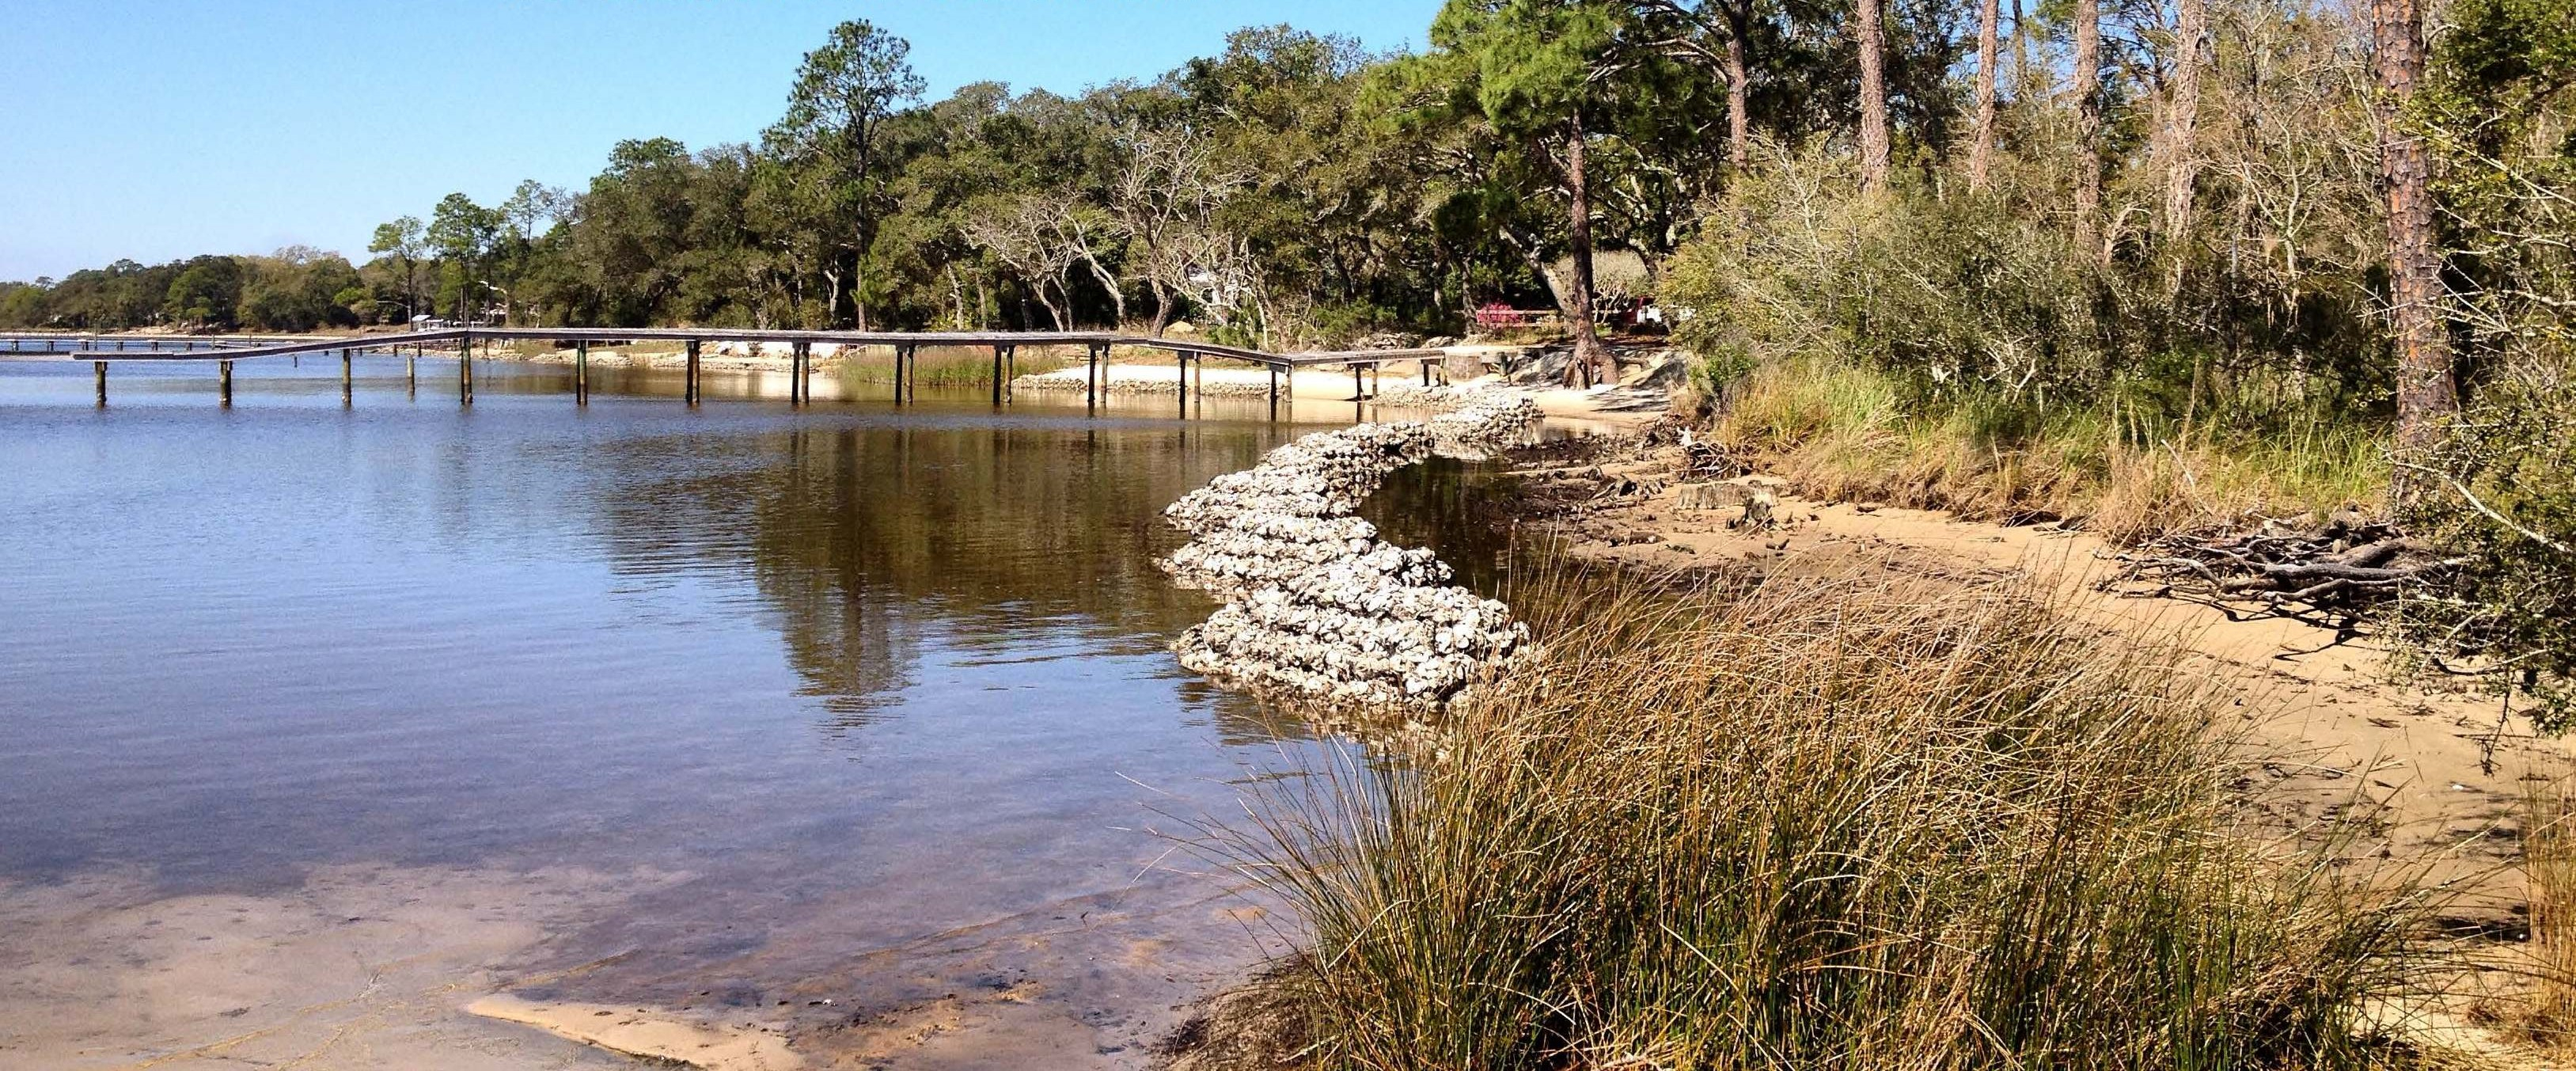 Bayou Grande Living Shoreline Project